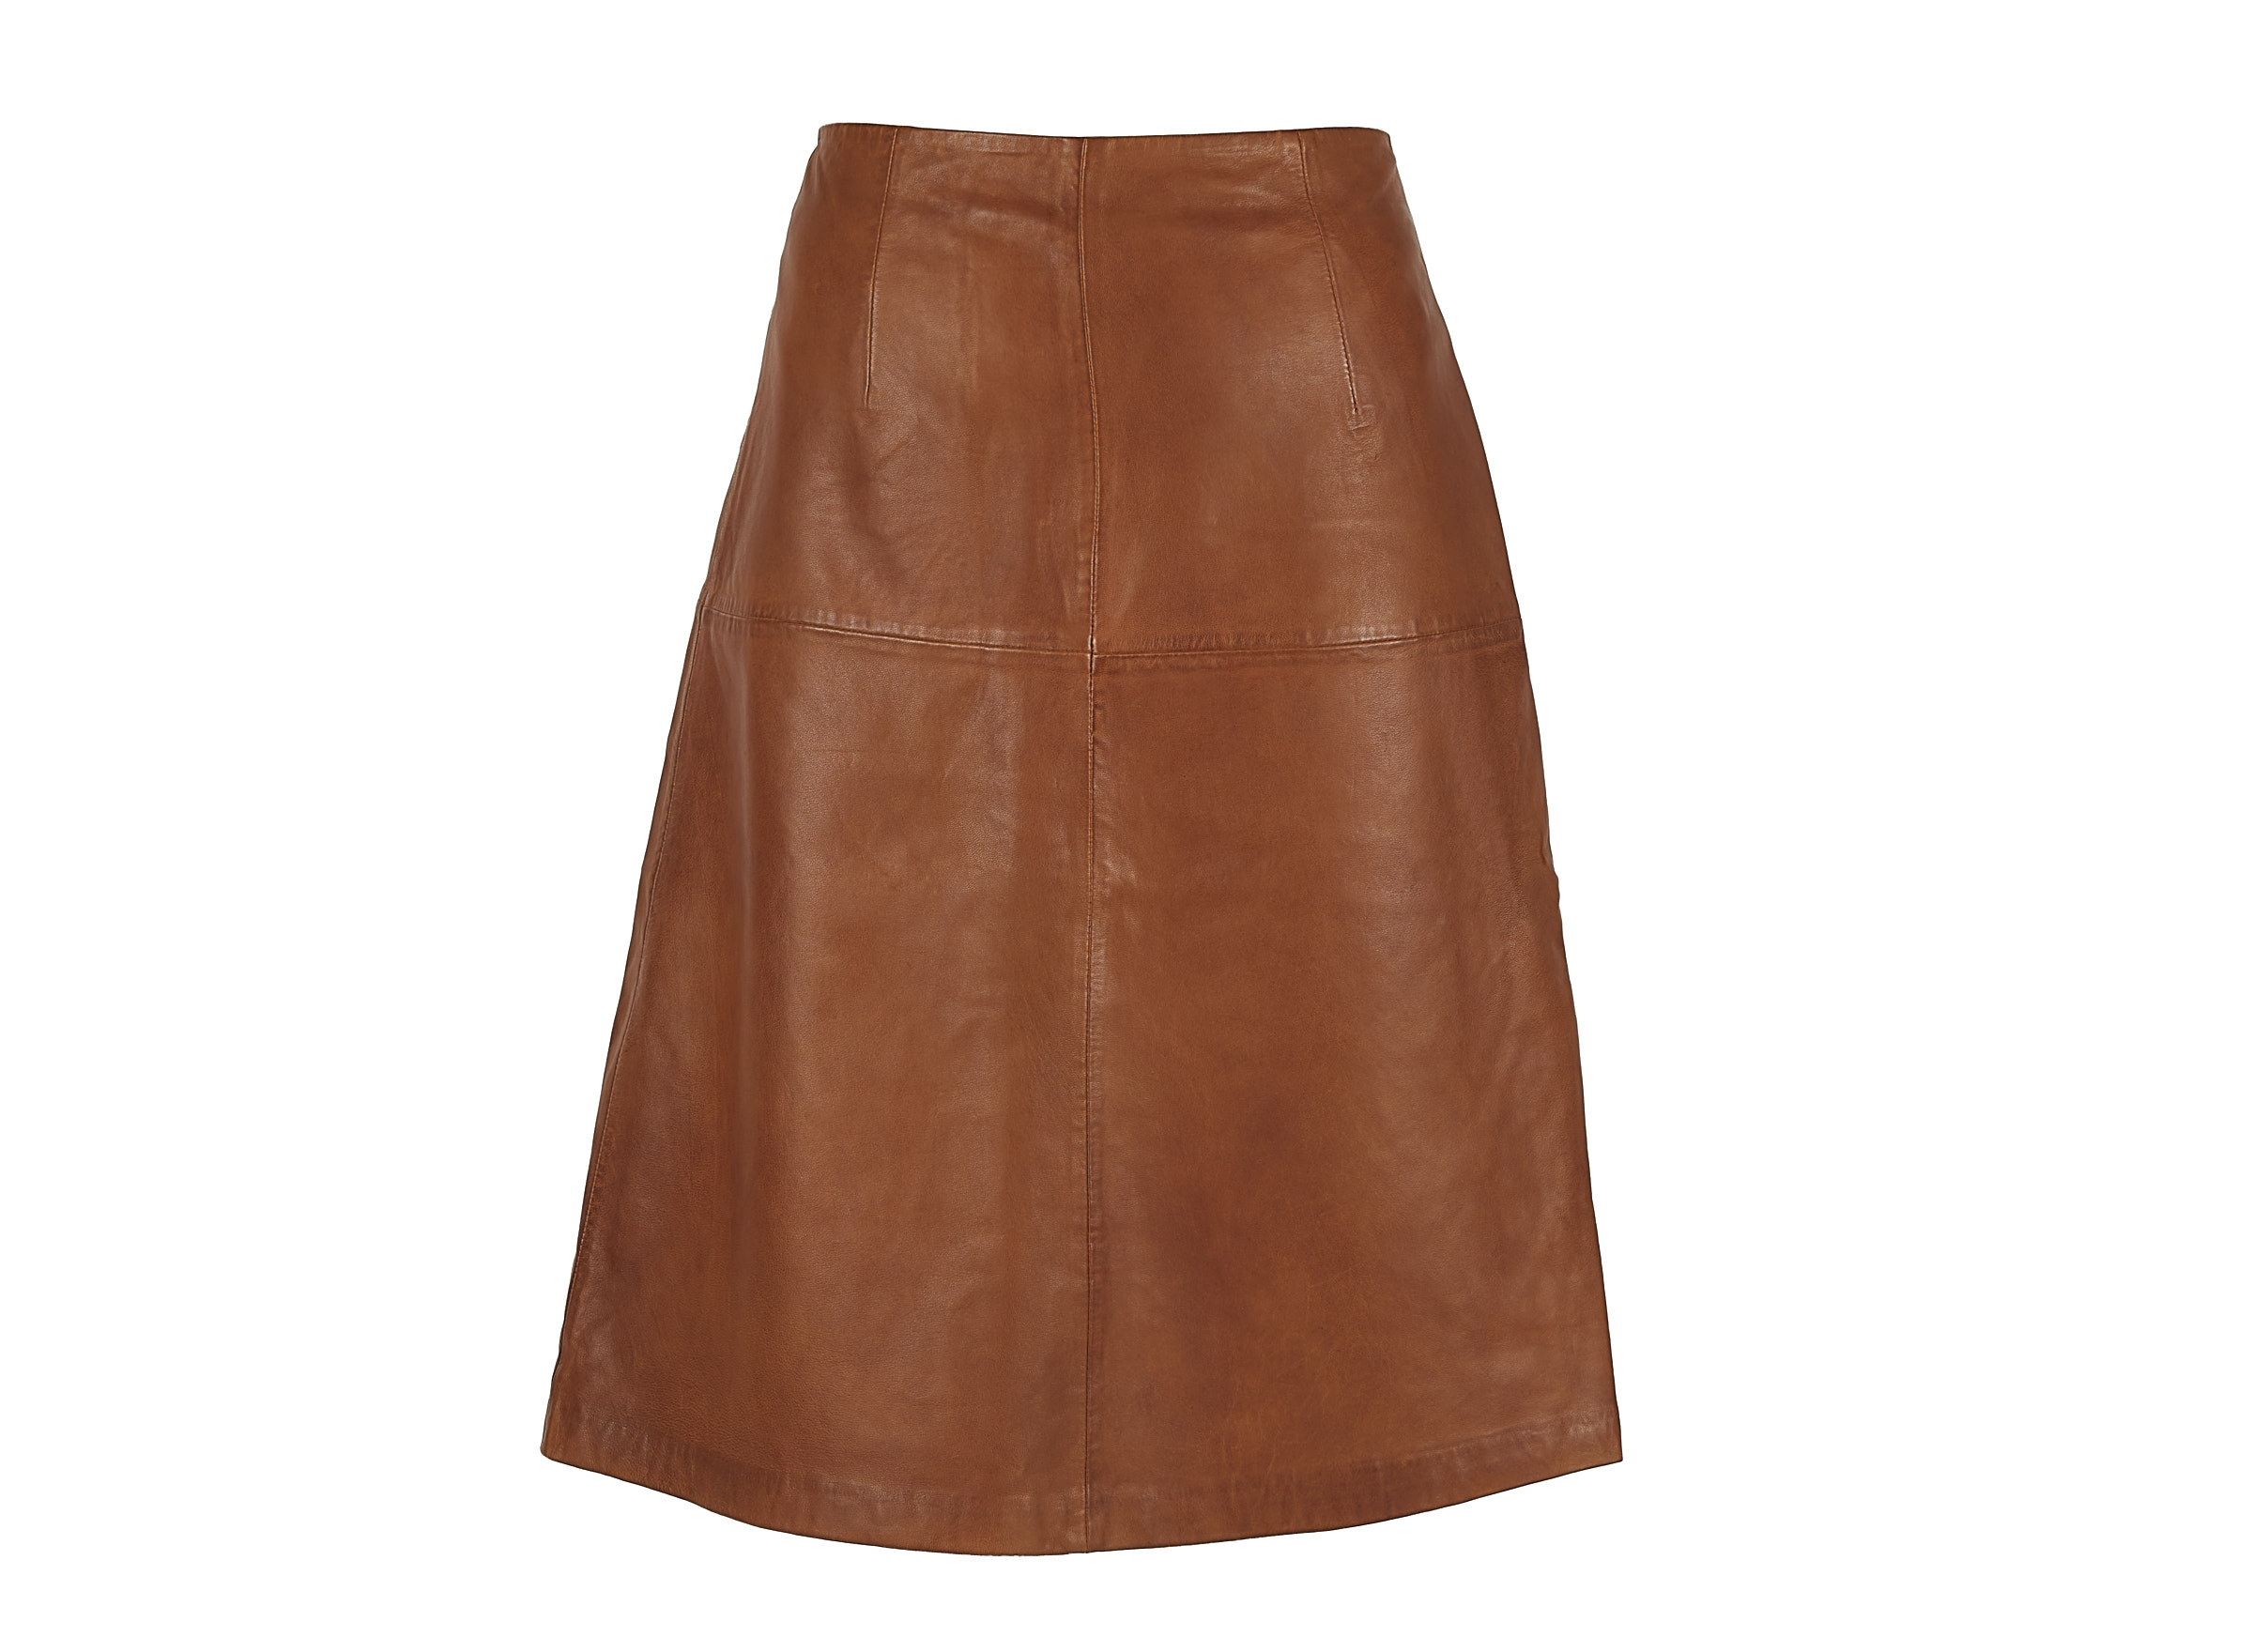 Chabo Bags - Leather Skirt Cicely - Camel 40